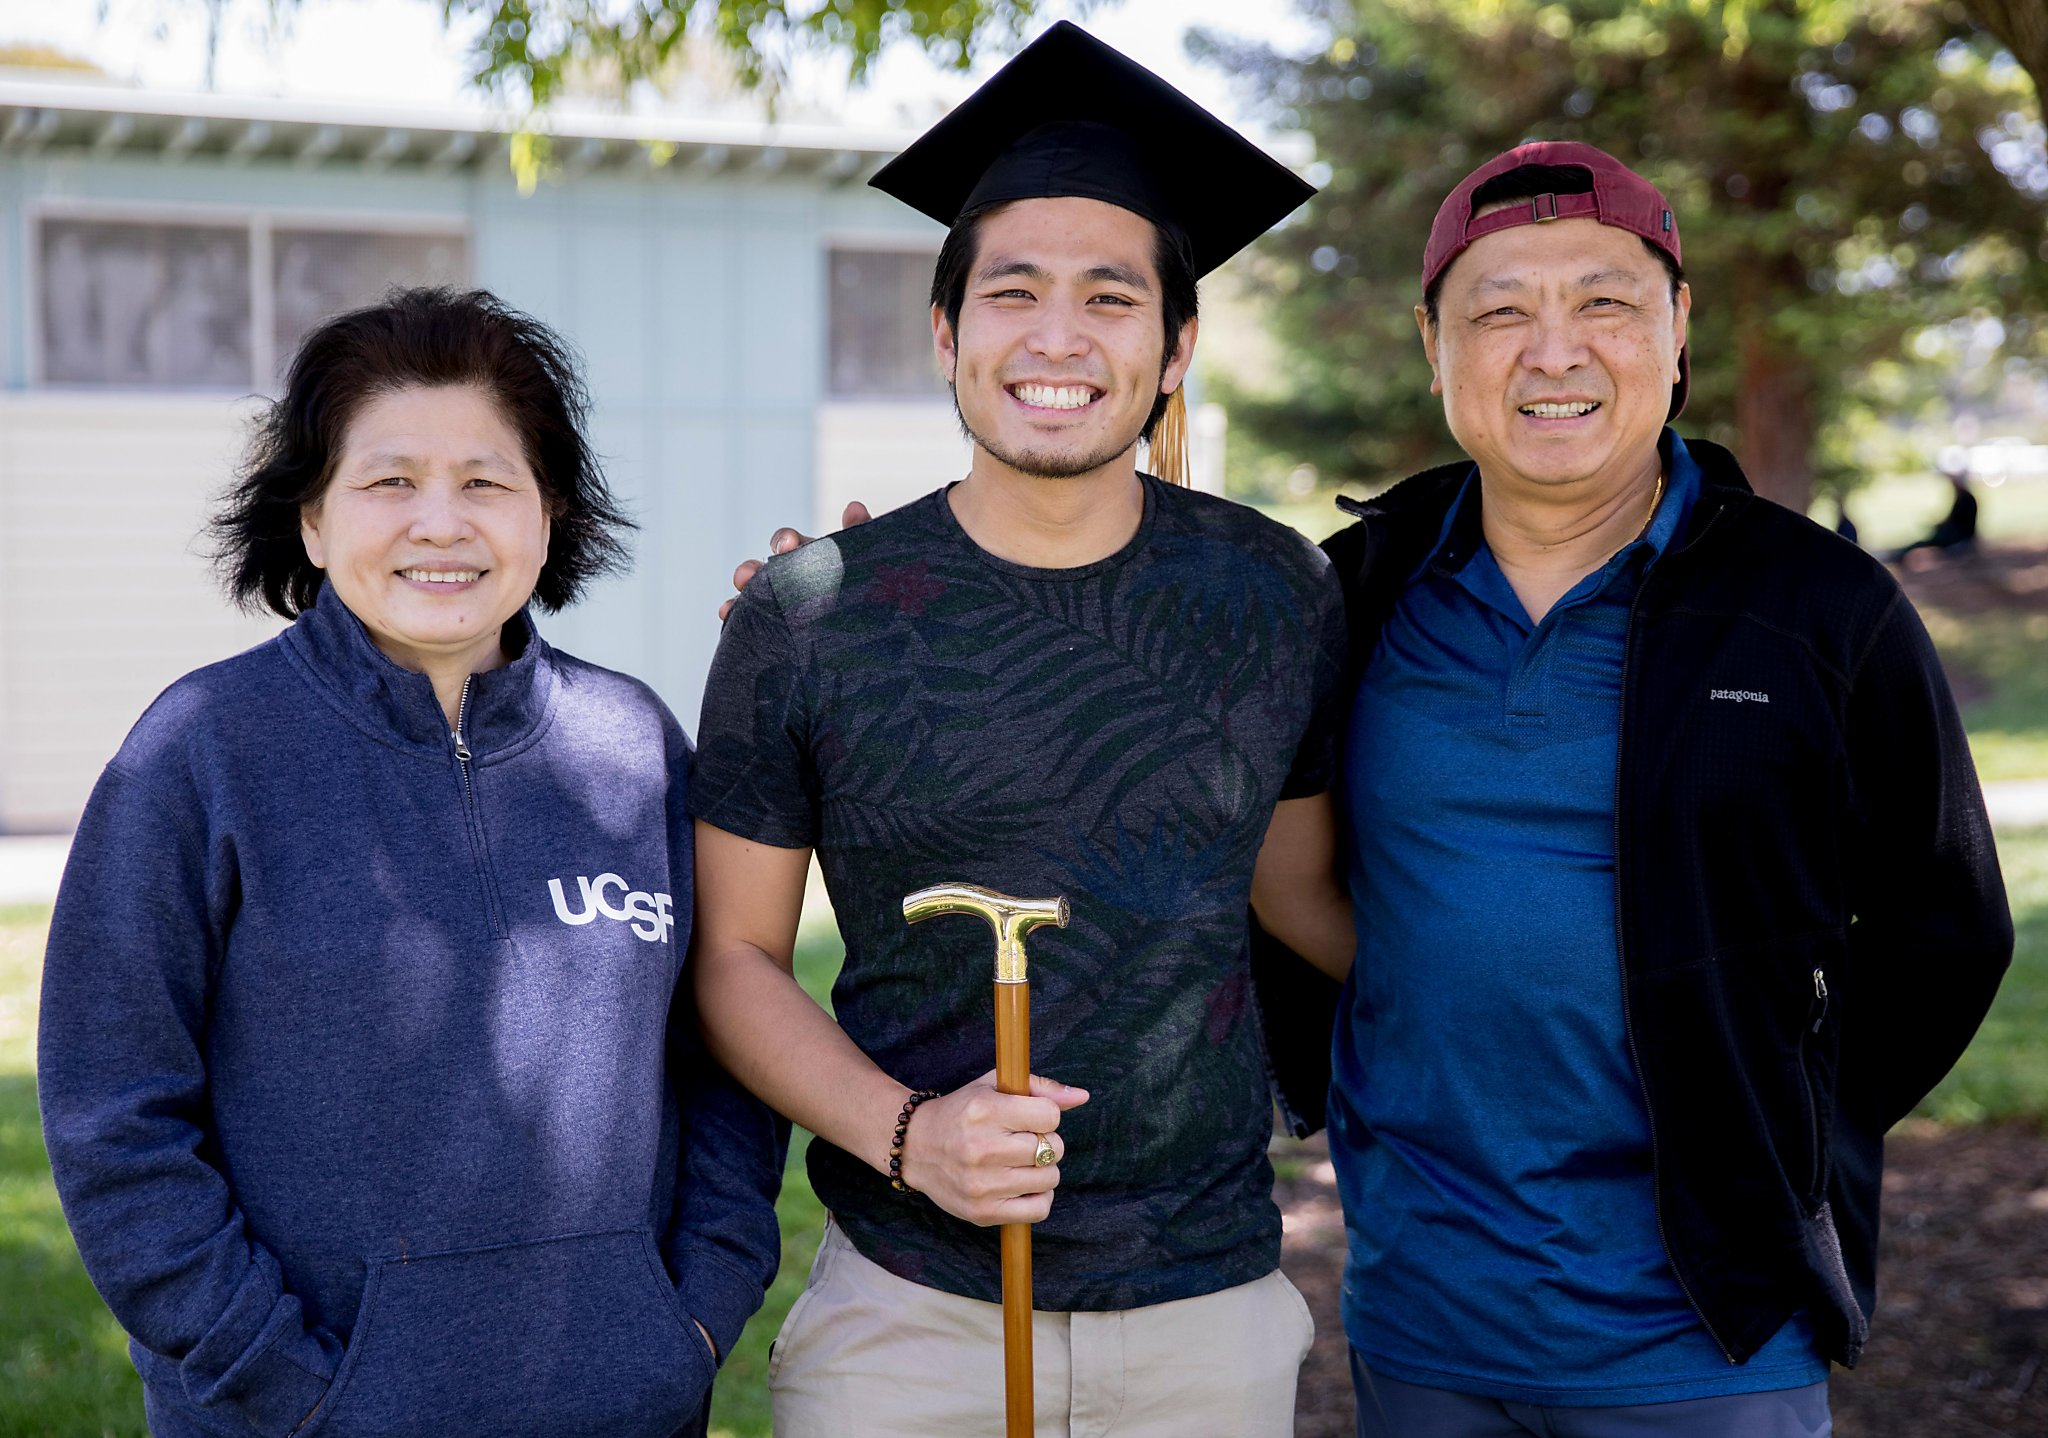 UCSF medical school graduates first undocumented student in